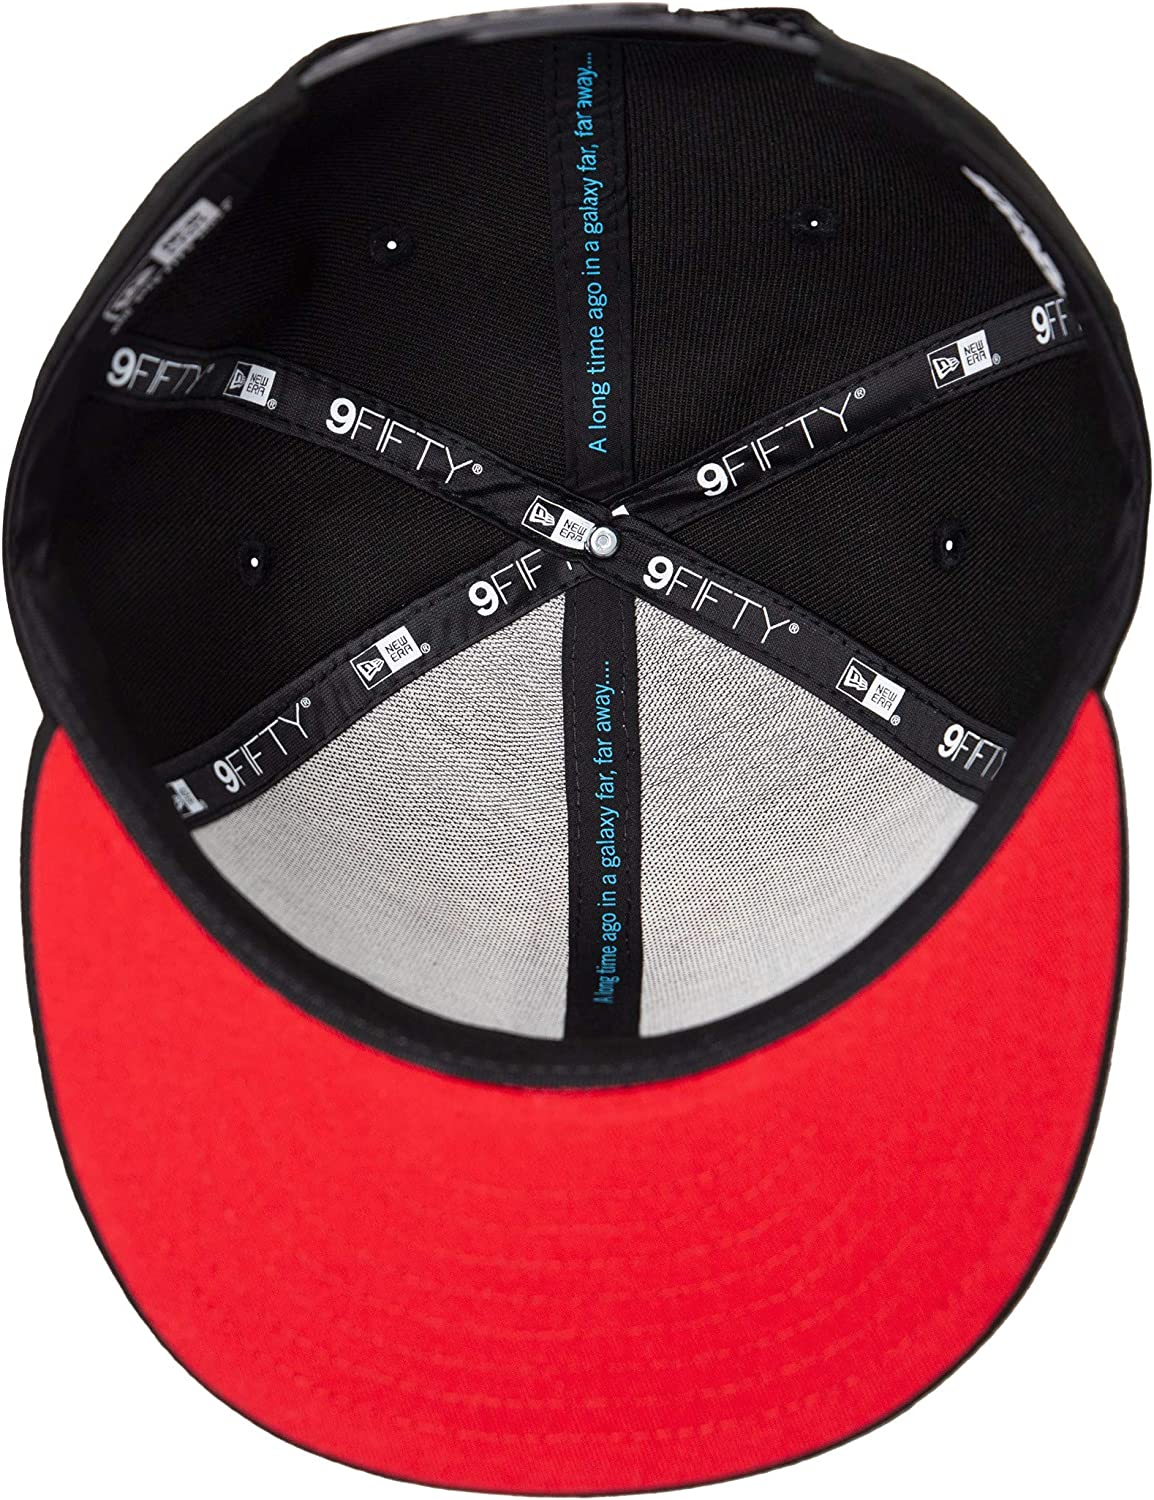 Star Wars The Rise of Skywalker Leather Empire Trio 9Fifty Adjustable Hat Black